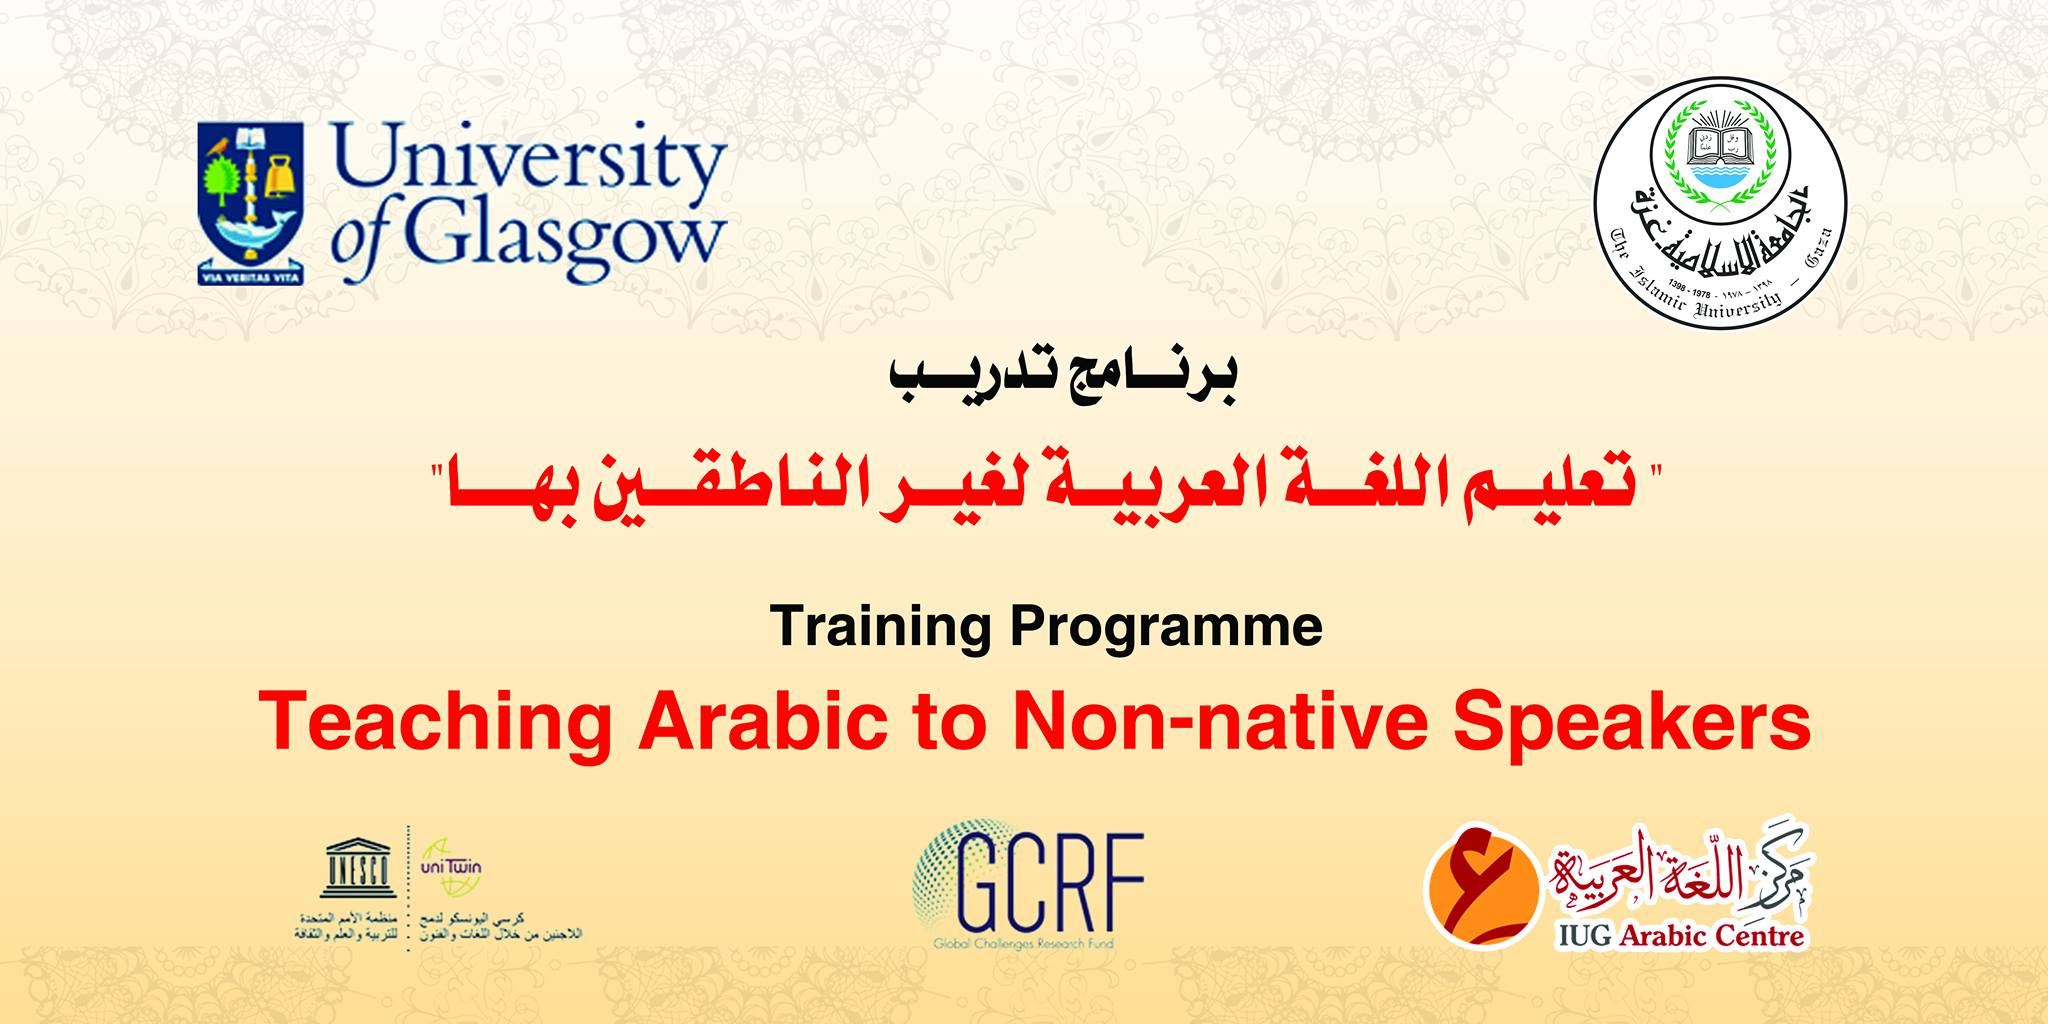 Training Programme (Teaching Arabic to Non-Arabic Speakers)